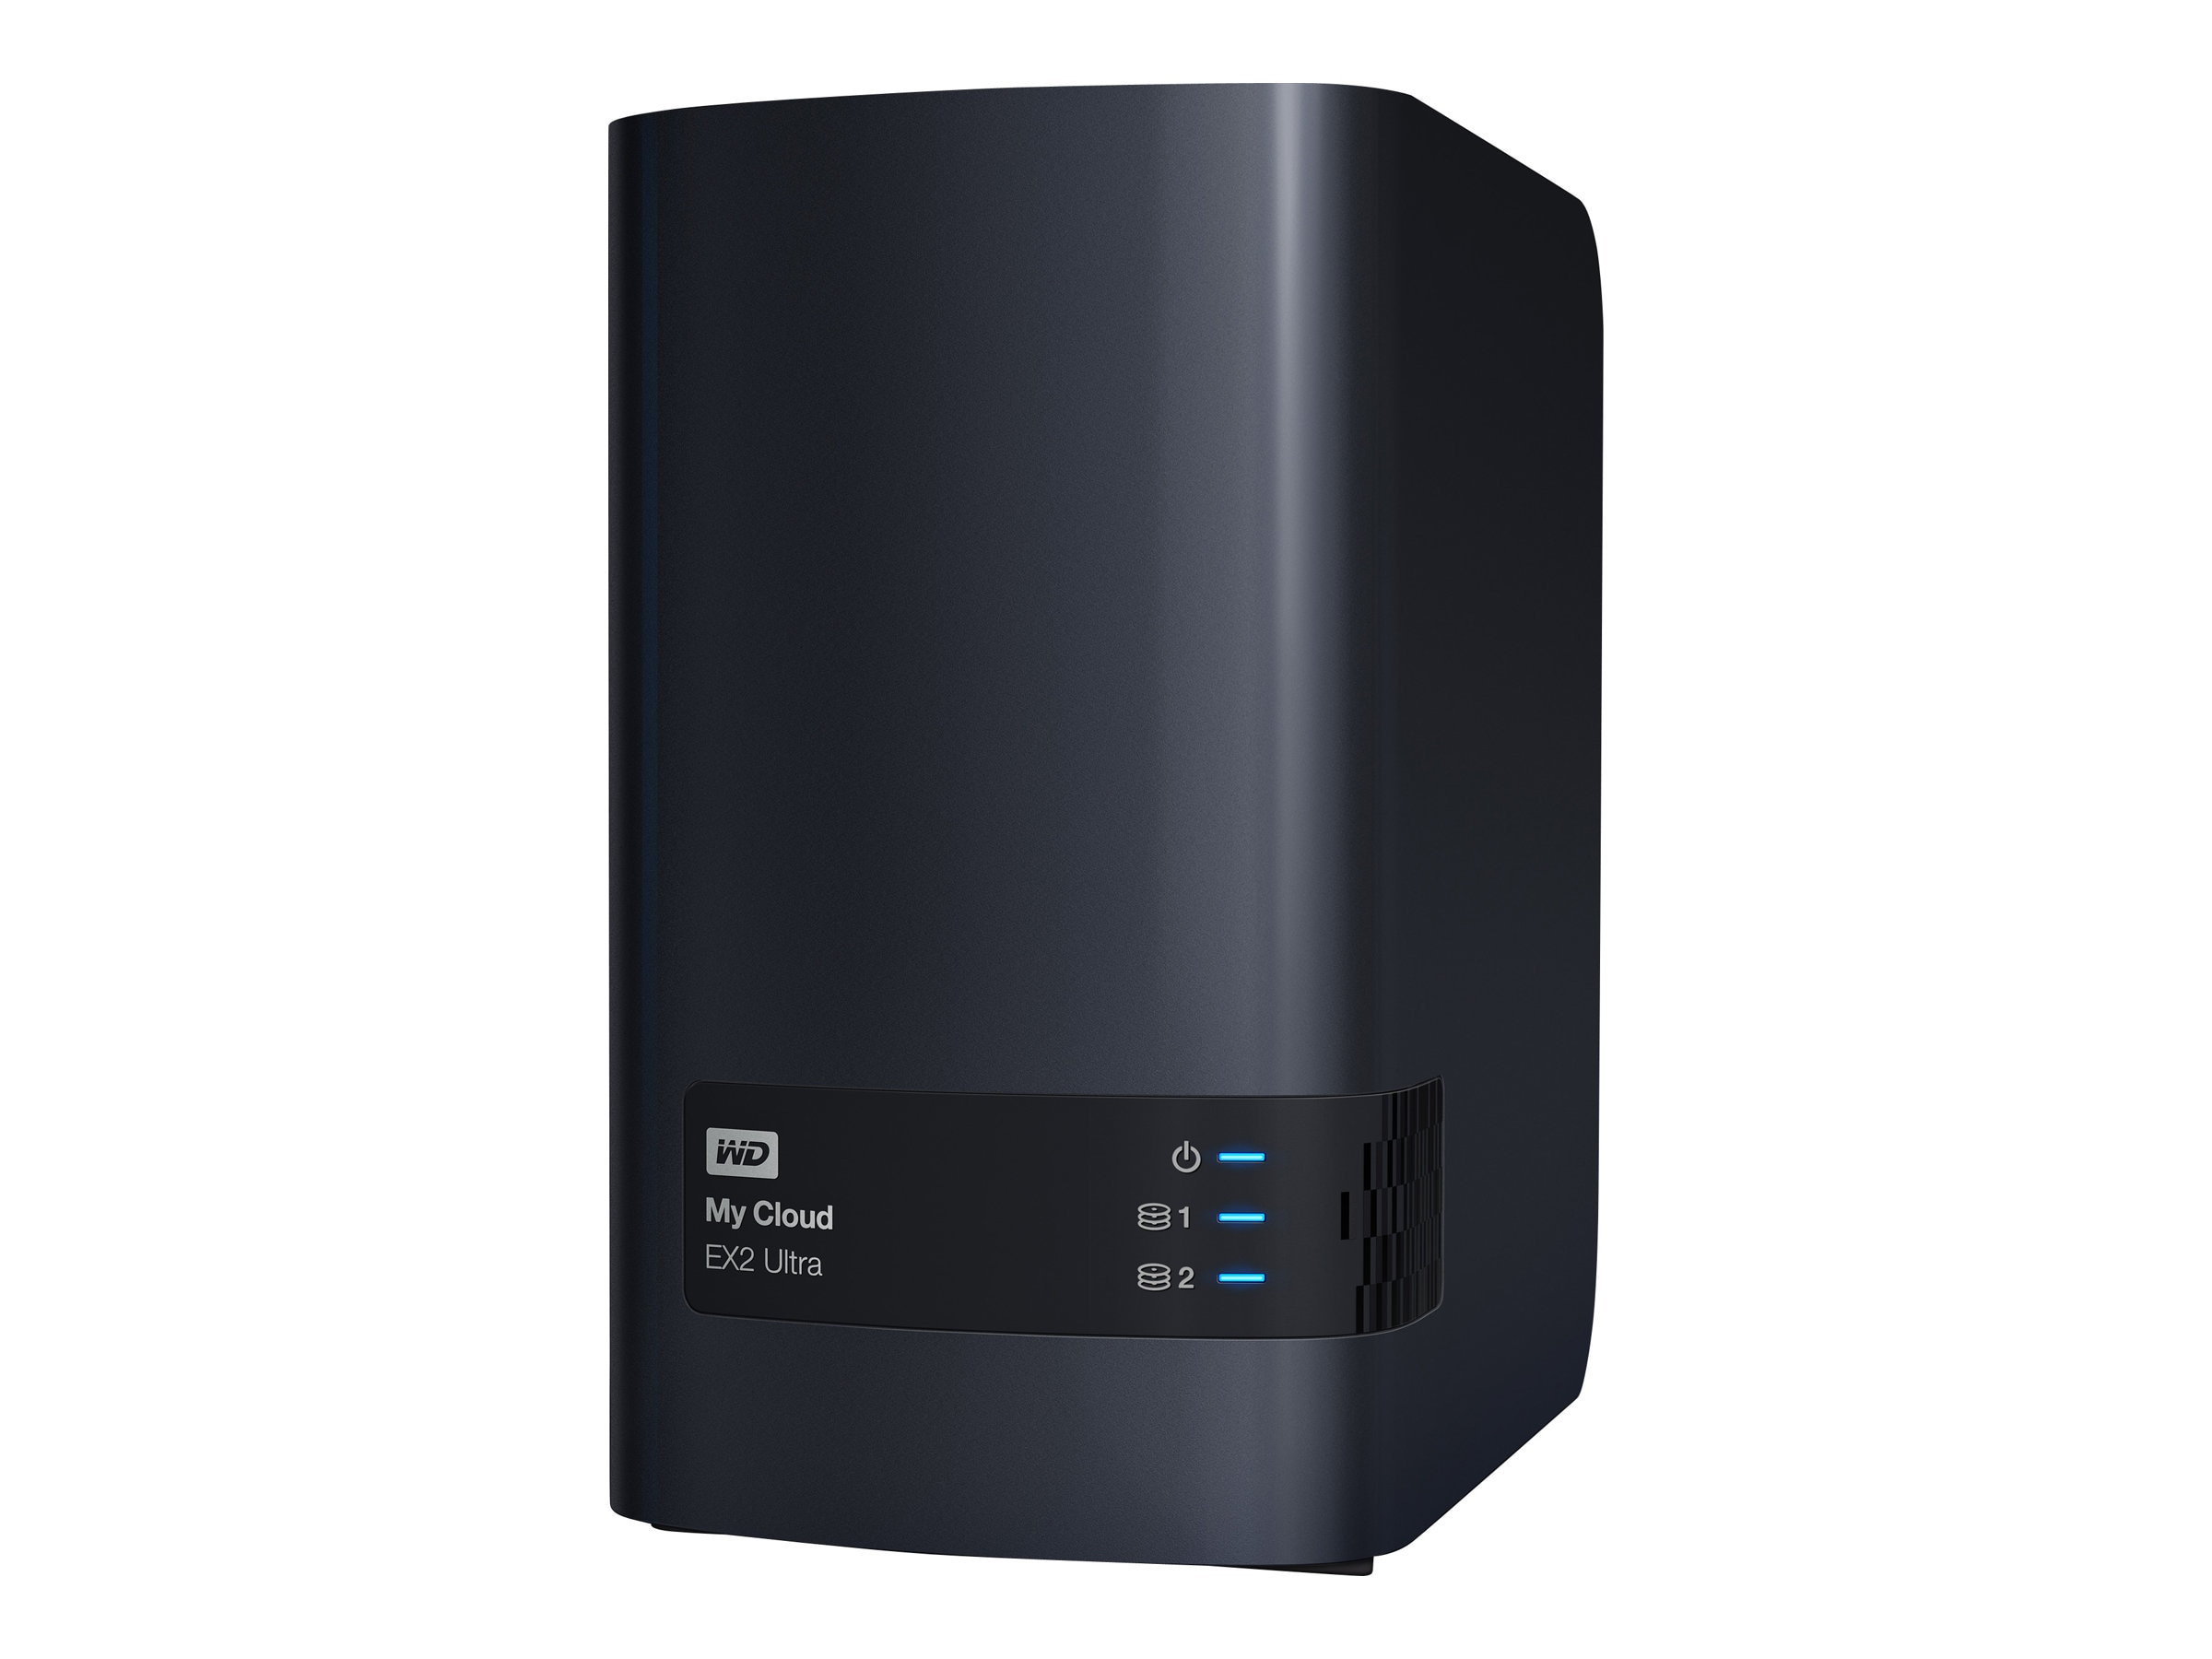 WD 12TB WD My Cloud EX2 Ultra Private Cloud NAS Storage, WDBVBZ0120JCH